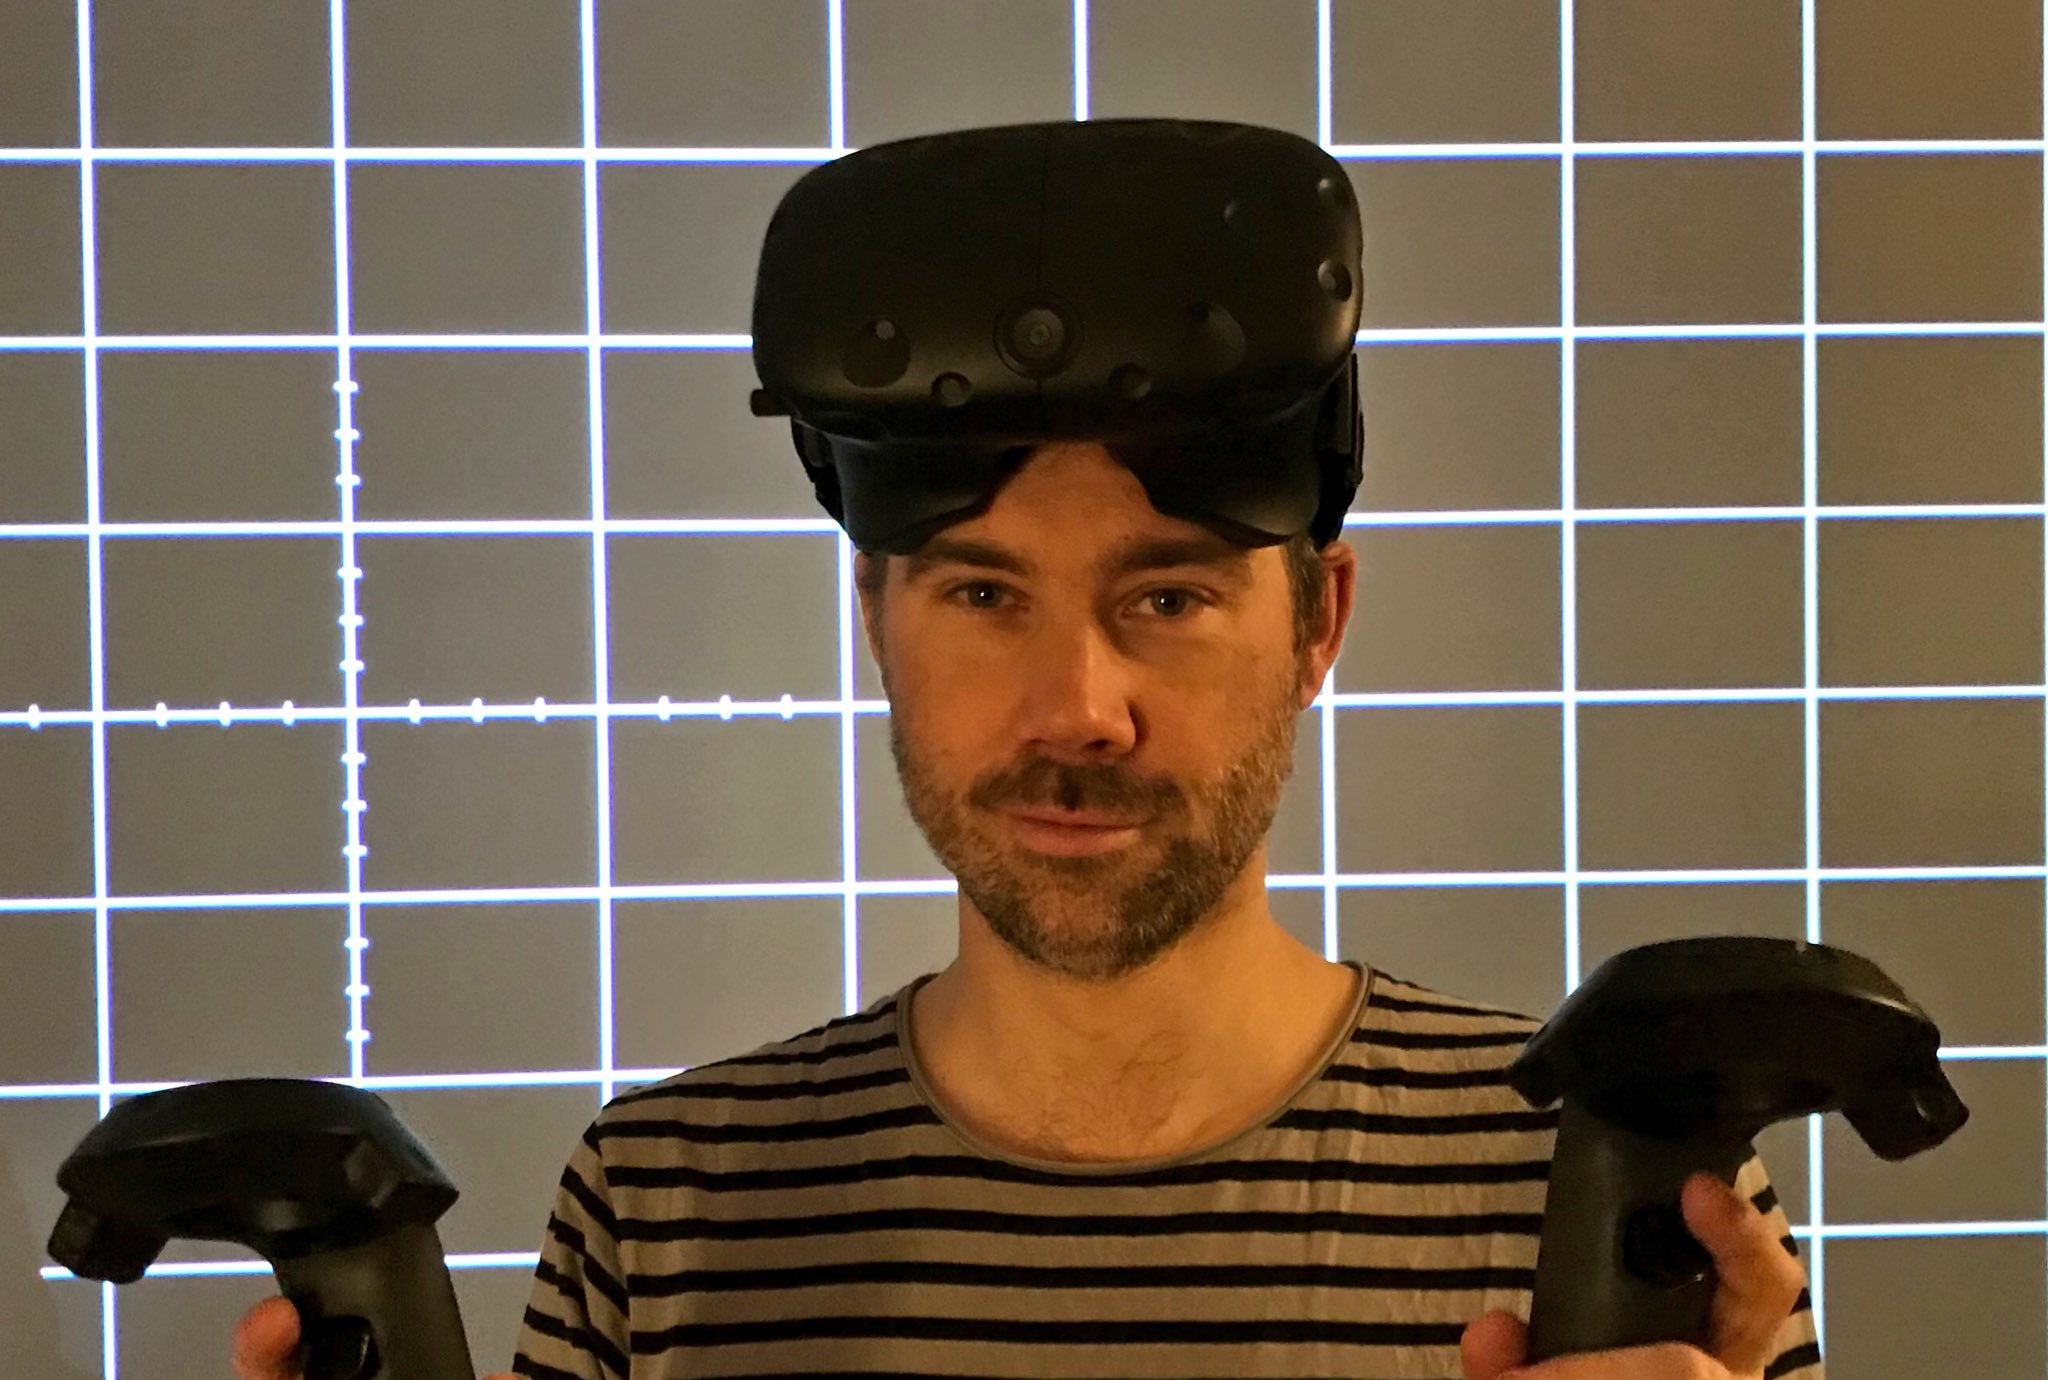 This is the new Oskar Burman, working at his own VR company 'Fast Travel Games'!